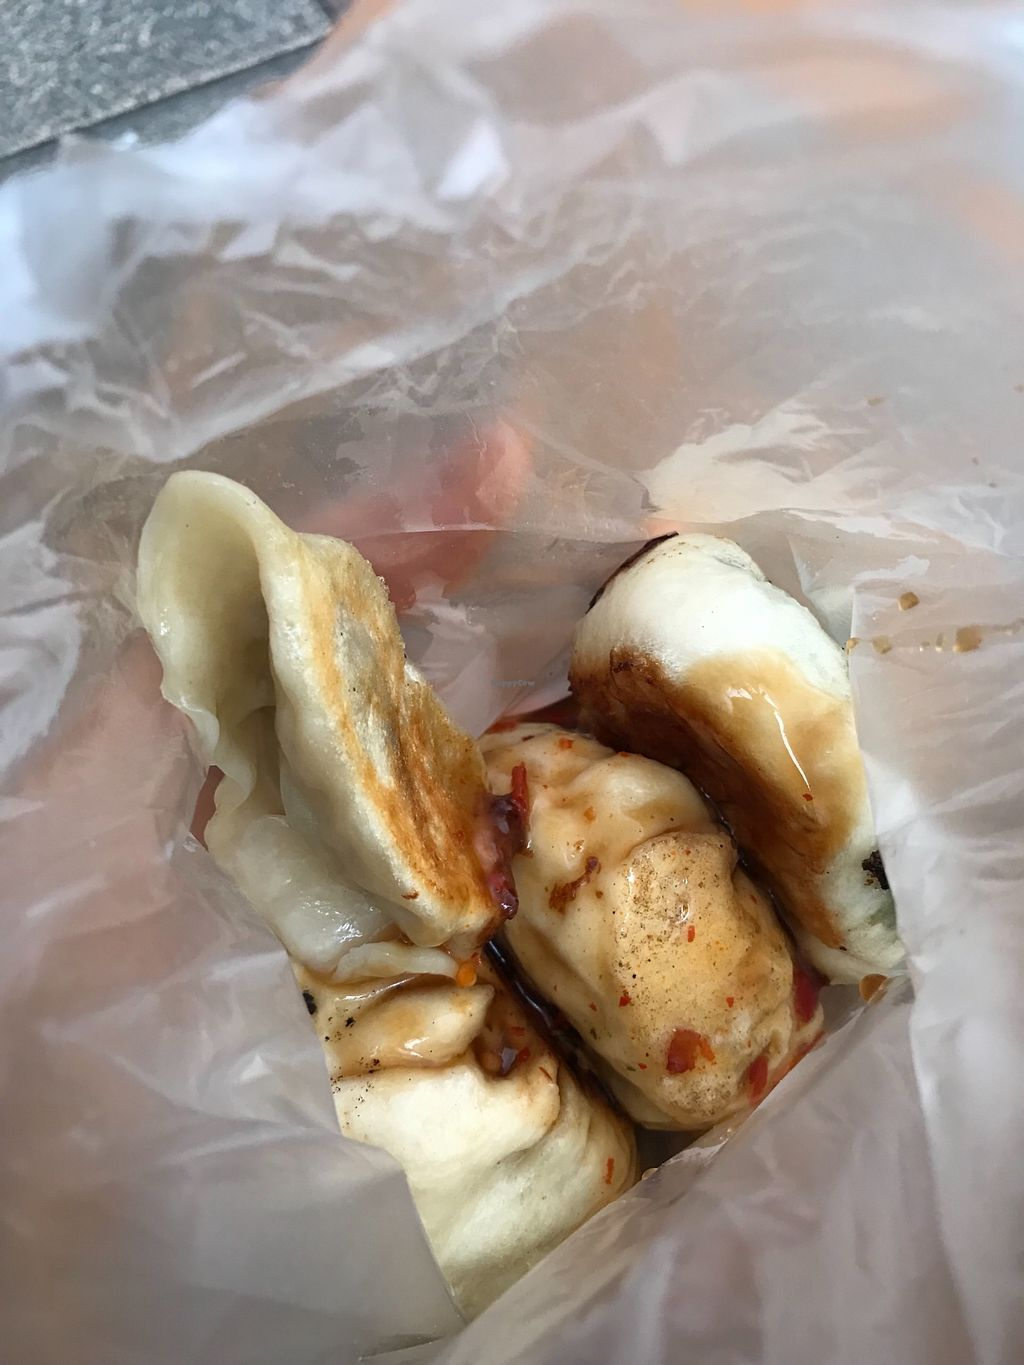 """Photo of Shang Ding Huang Jia - Wanhua District  by <a href=""""/members/profile/theNumberOfTheBeast"""">theNumberOfTheBeast</a> <br/>Potstickers and dim sum in a bag <br/> December 25, 2017  - <a href='/contact/abuse/image/87806/338897'>Report</a>"""